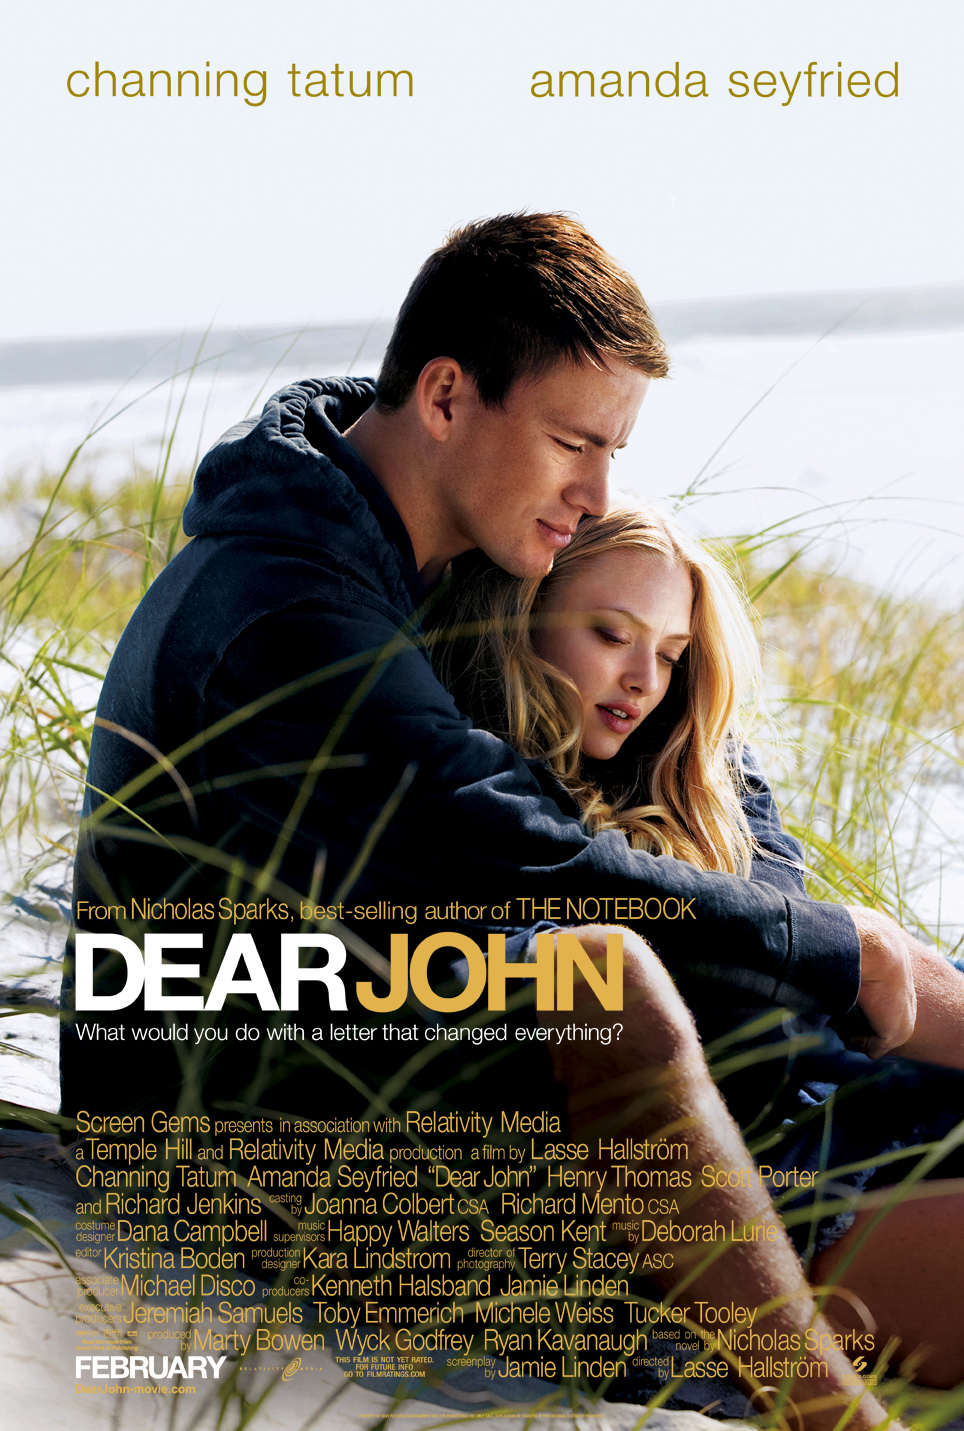 FIRST LOOK: Official Poster for Channing Tatum's 'Dear John'